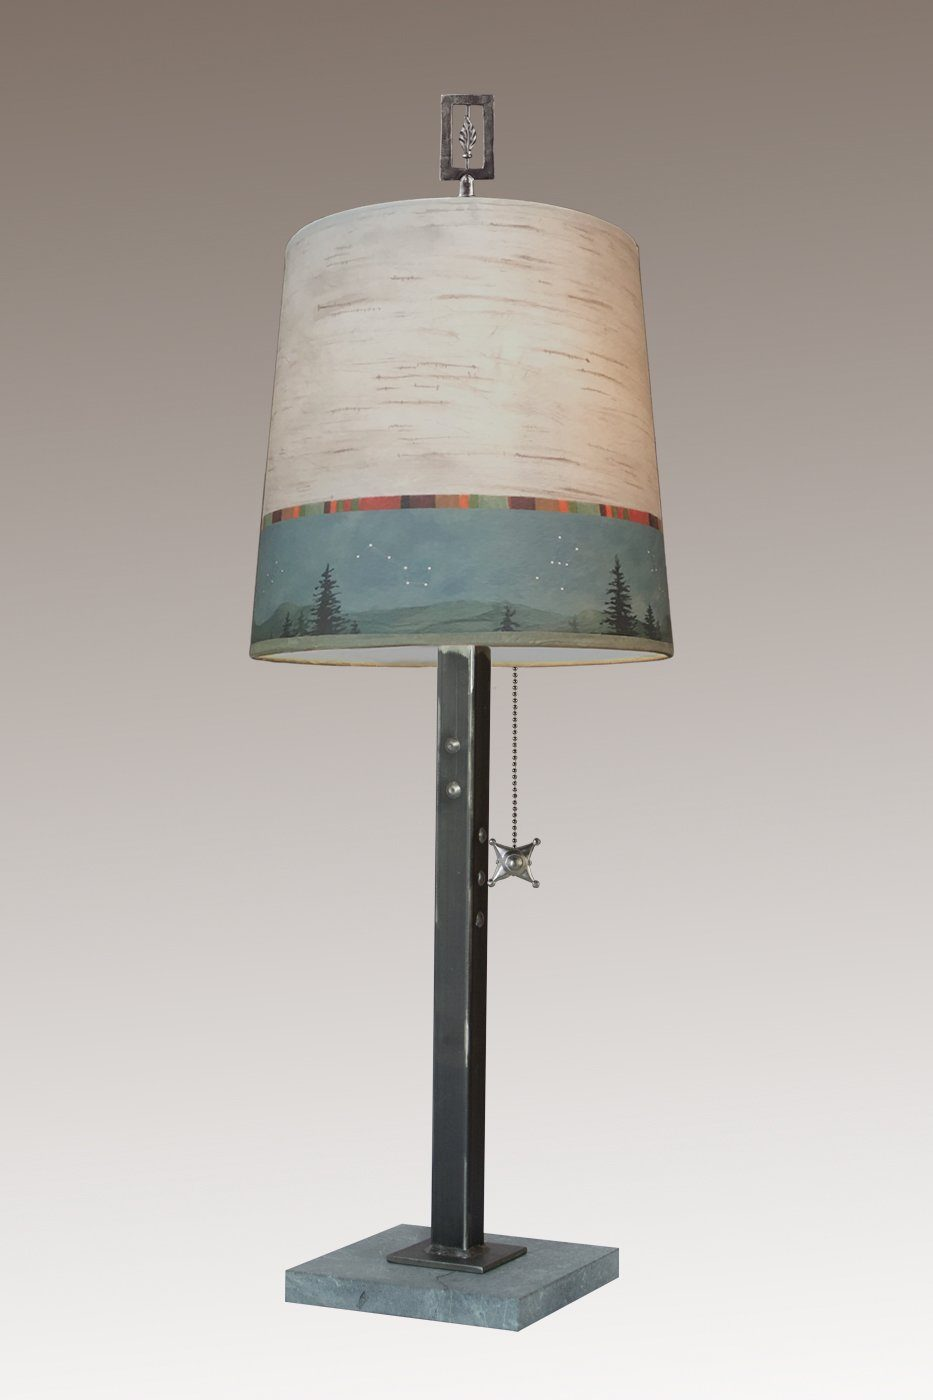 Steel Table Lamp on Marble with Medium Drum Shade in Birch Midnight